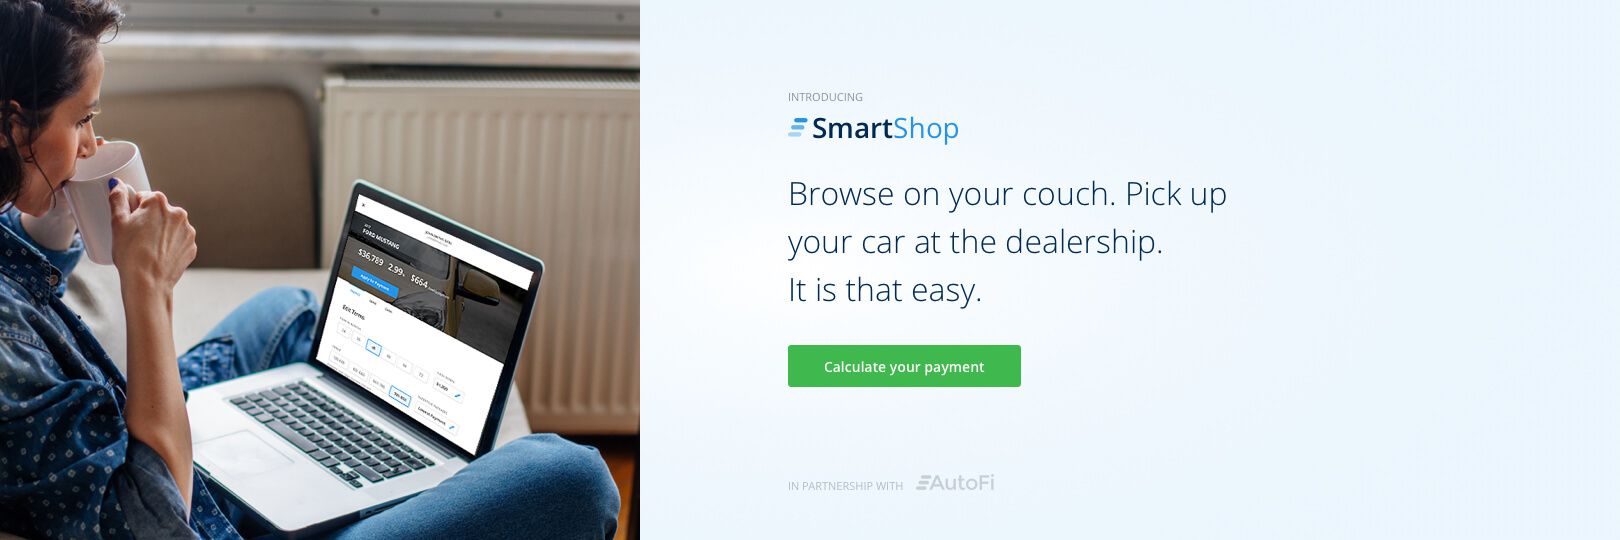 Smart Shop Desktop 11